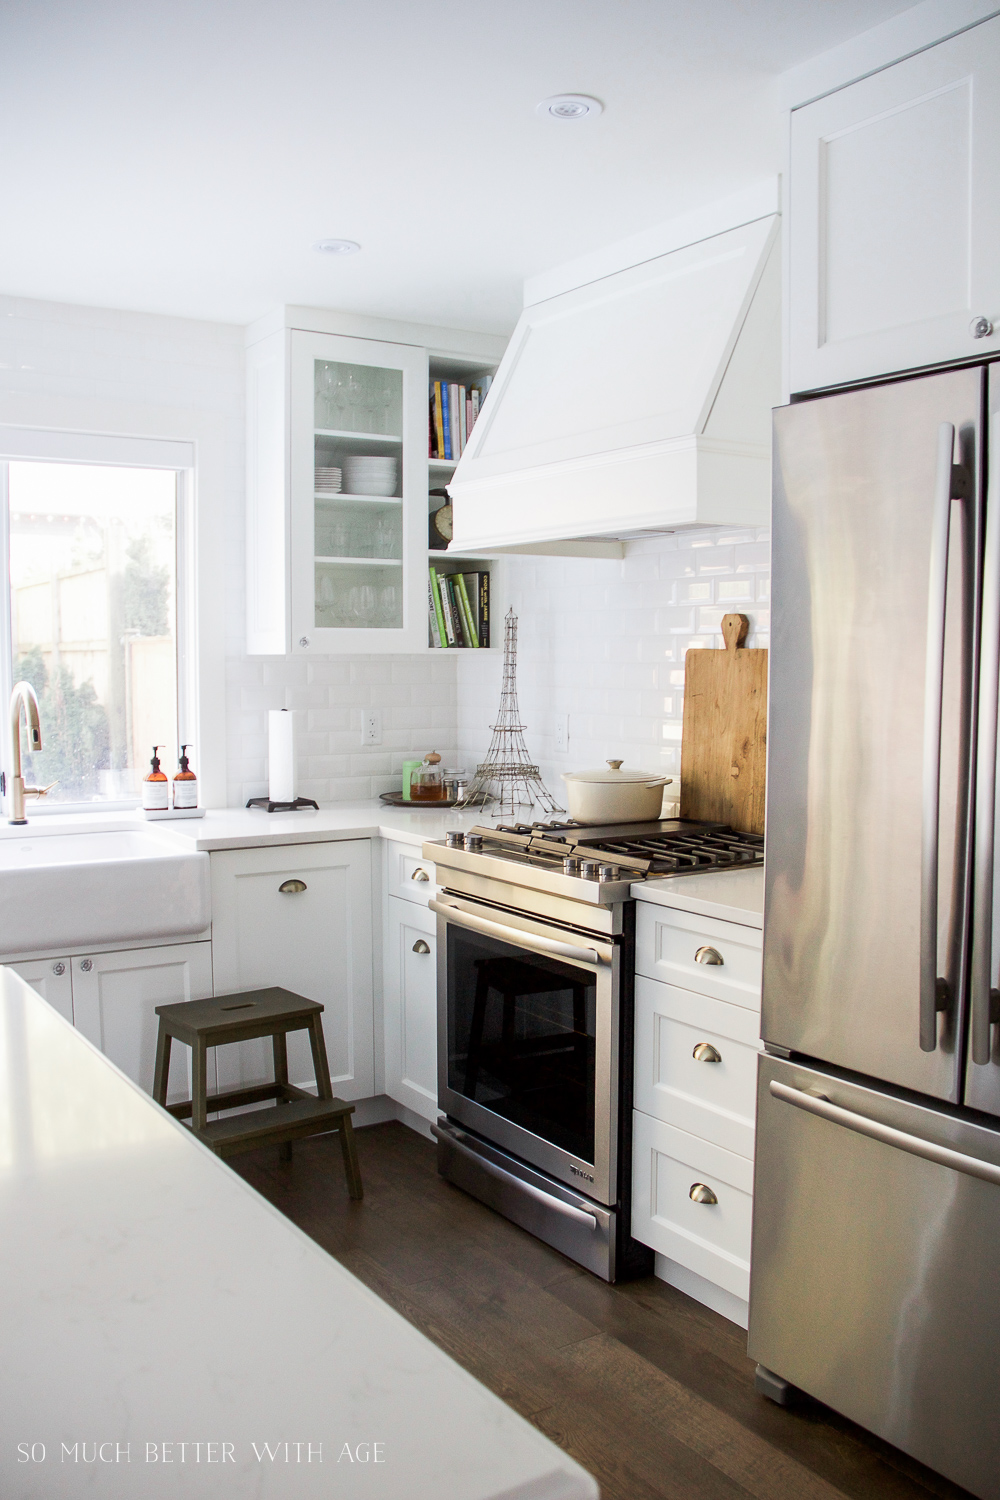 White kitchen, subway tile, white range hood/ My Big Beautiful Kitchen Renovation - Before and After Photos